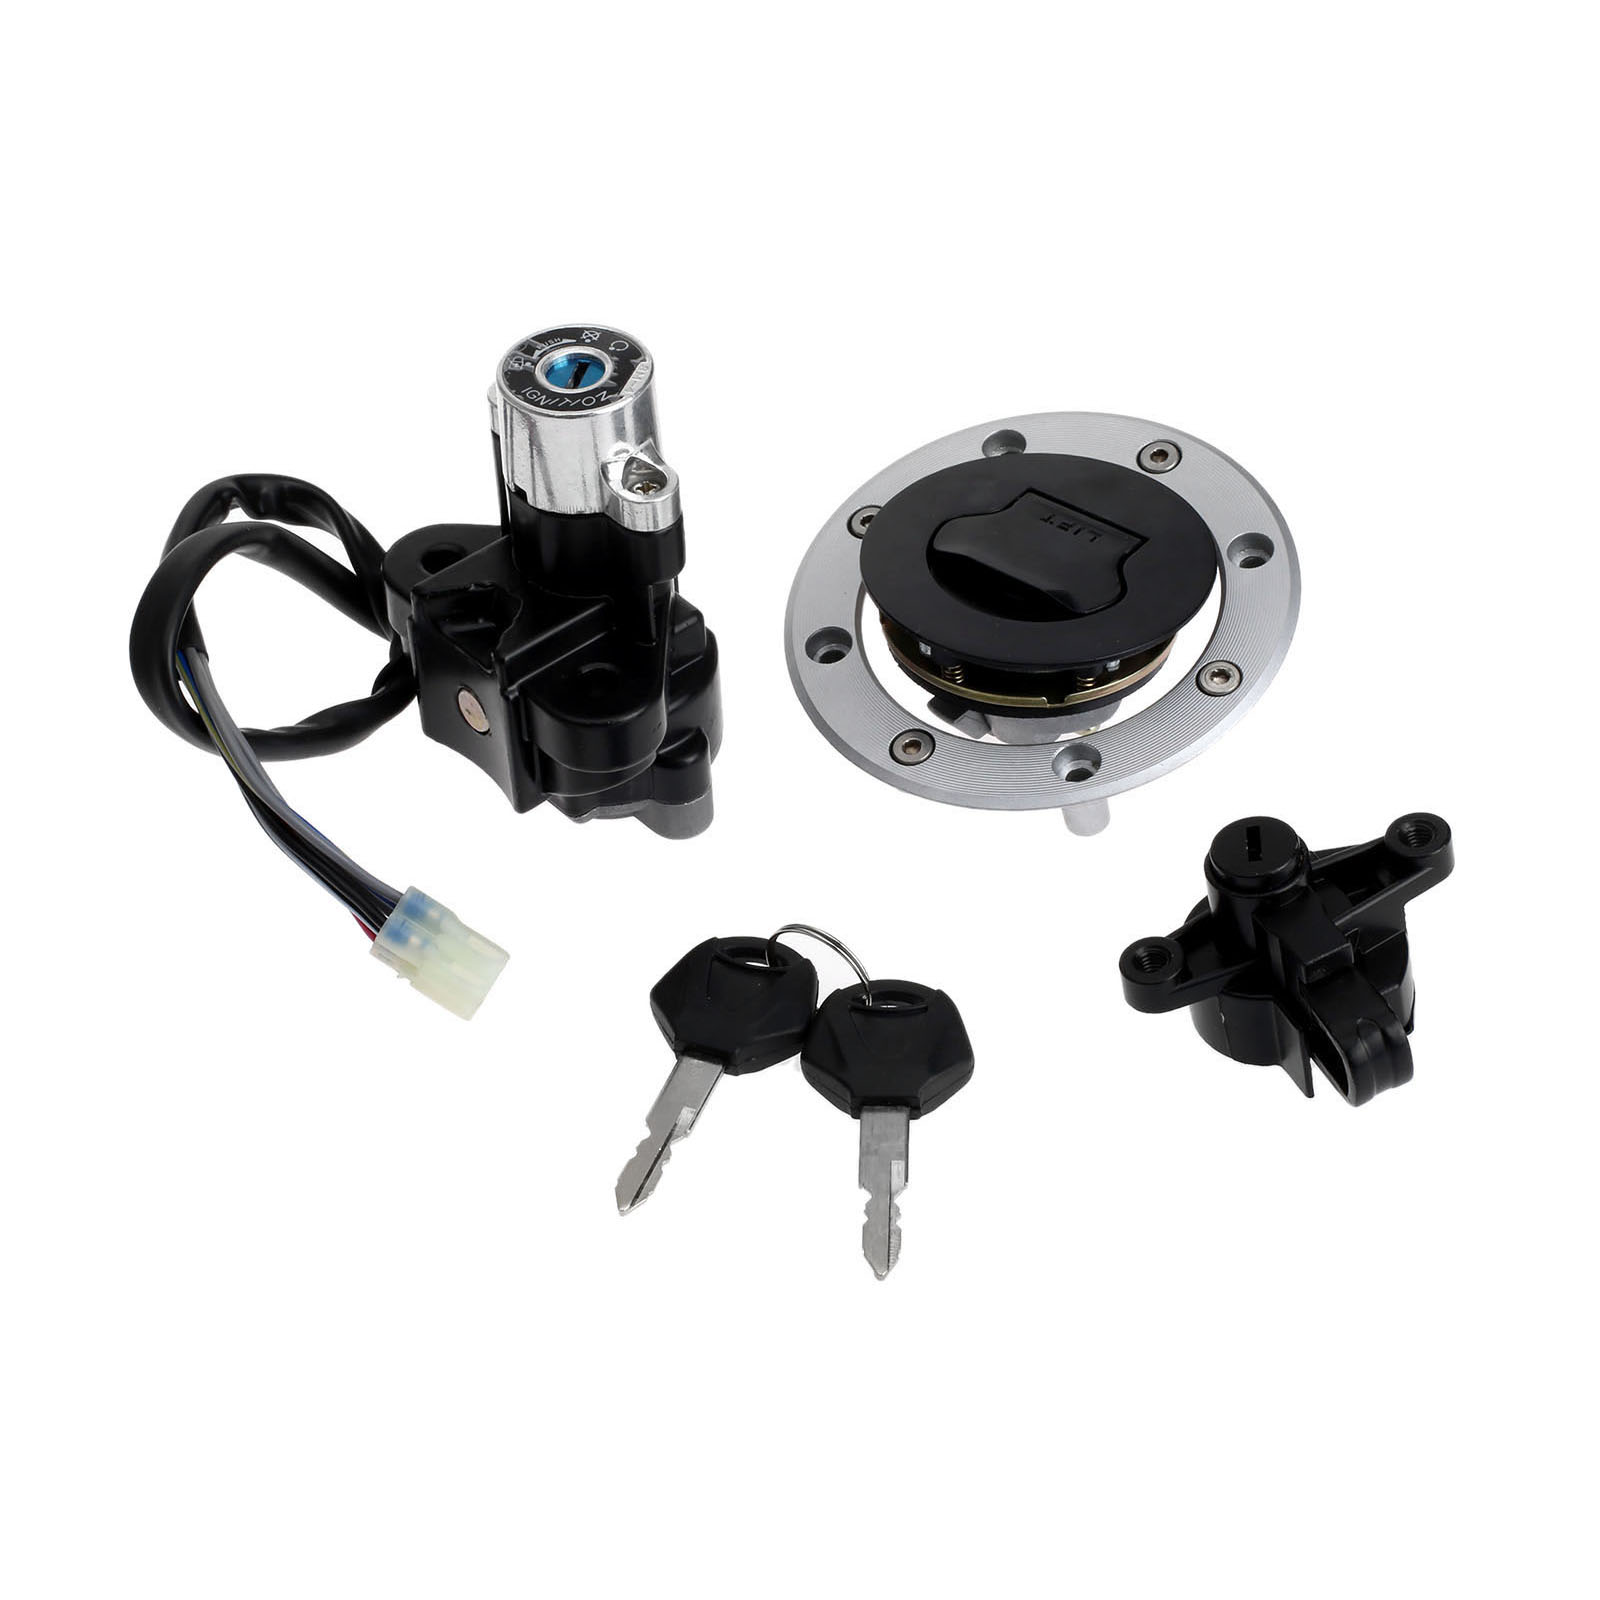 Motorcycle Ignition Switch Lock Fuel Gas Cap Cover Key Set For Suzuki GSF600 GSF1200 Bandit 1995-2005 Scooter Moped Lockset